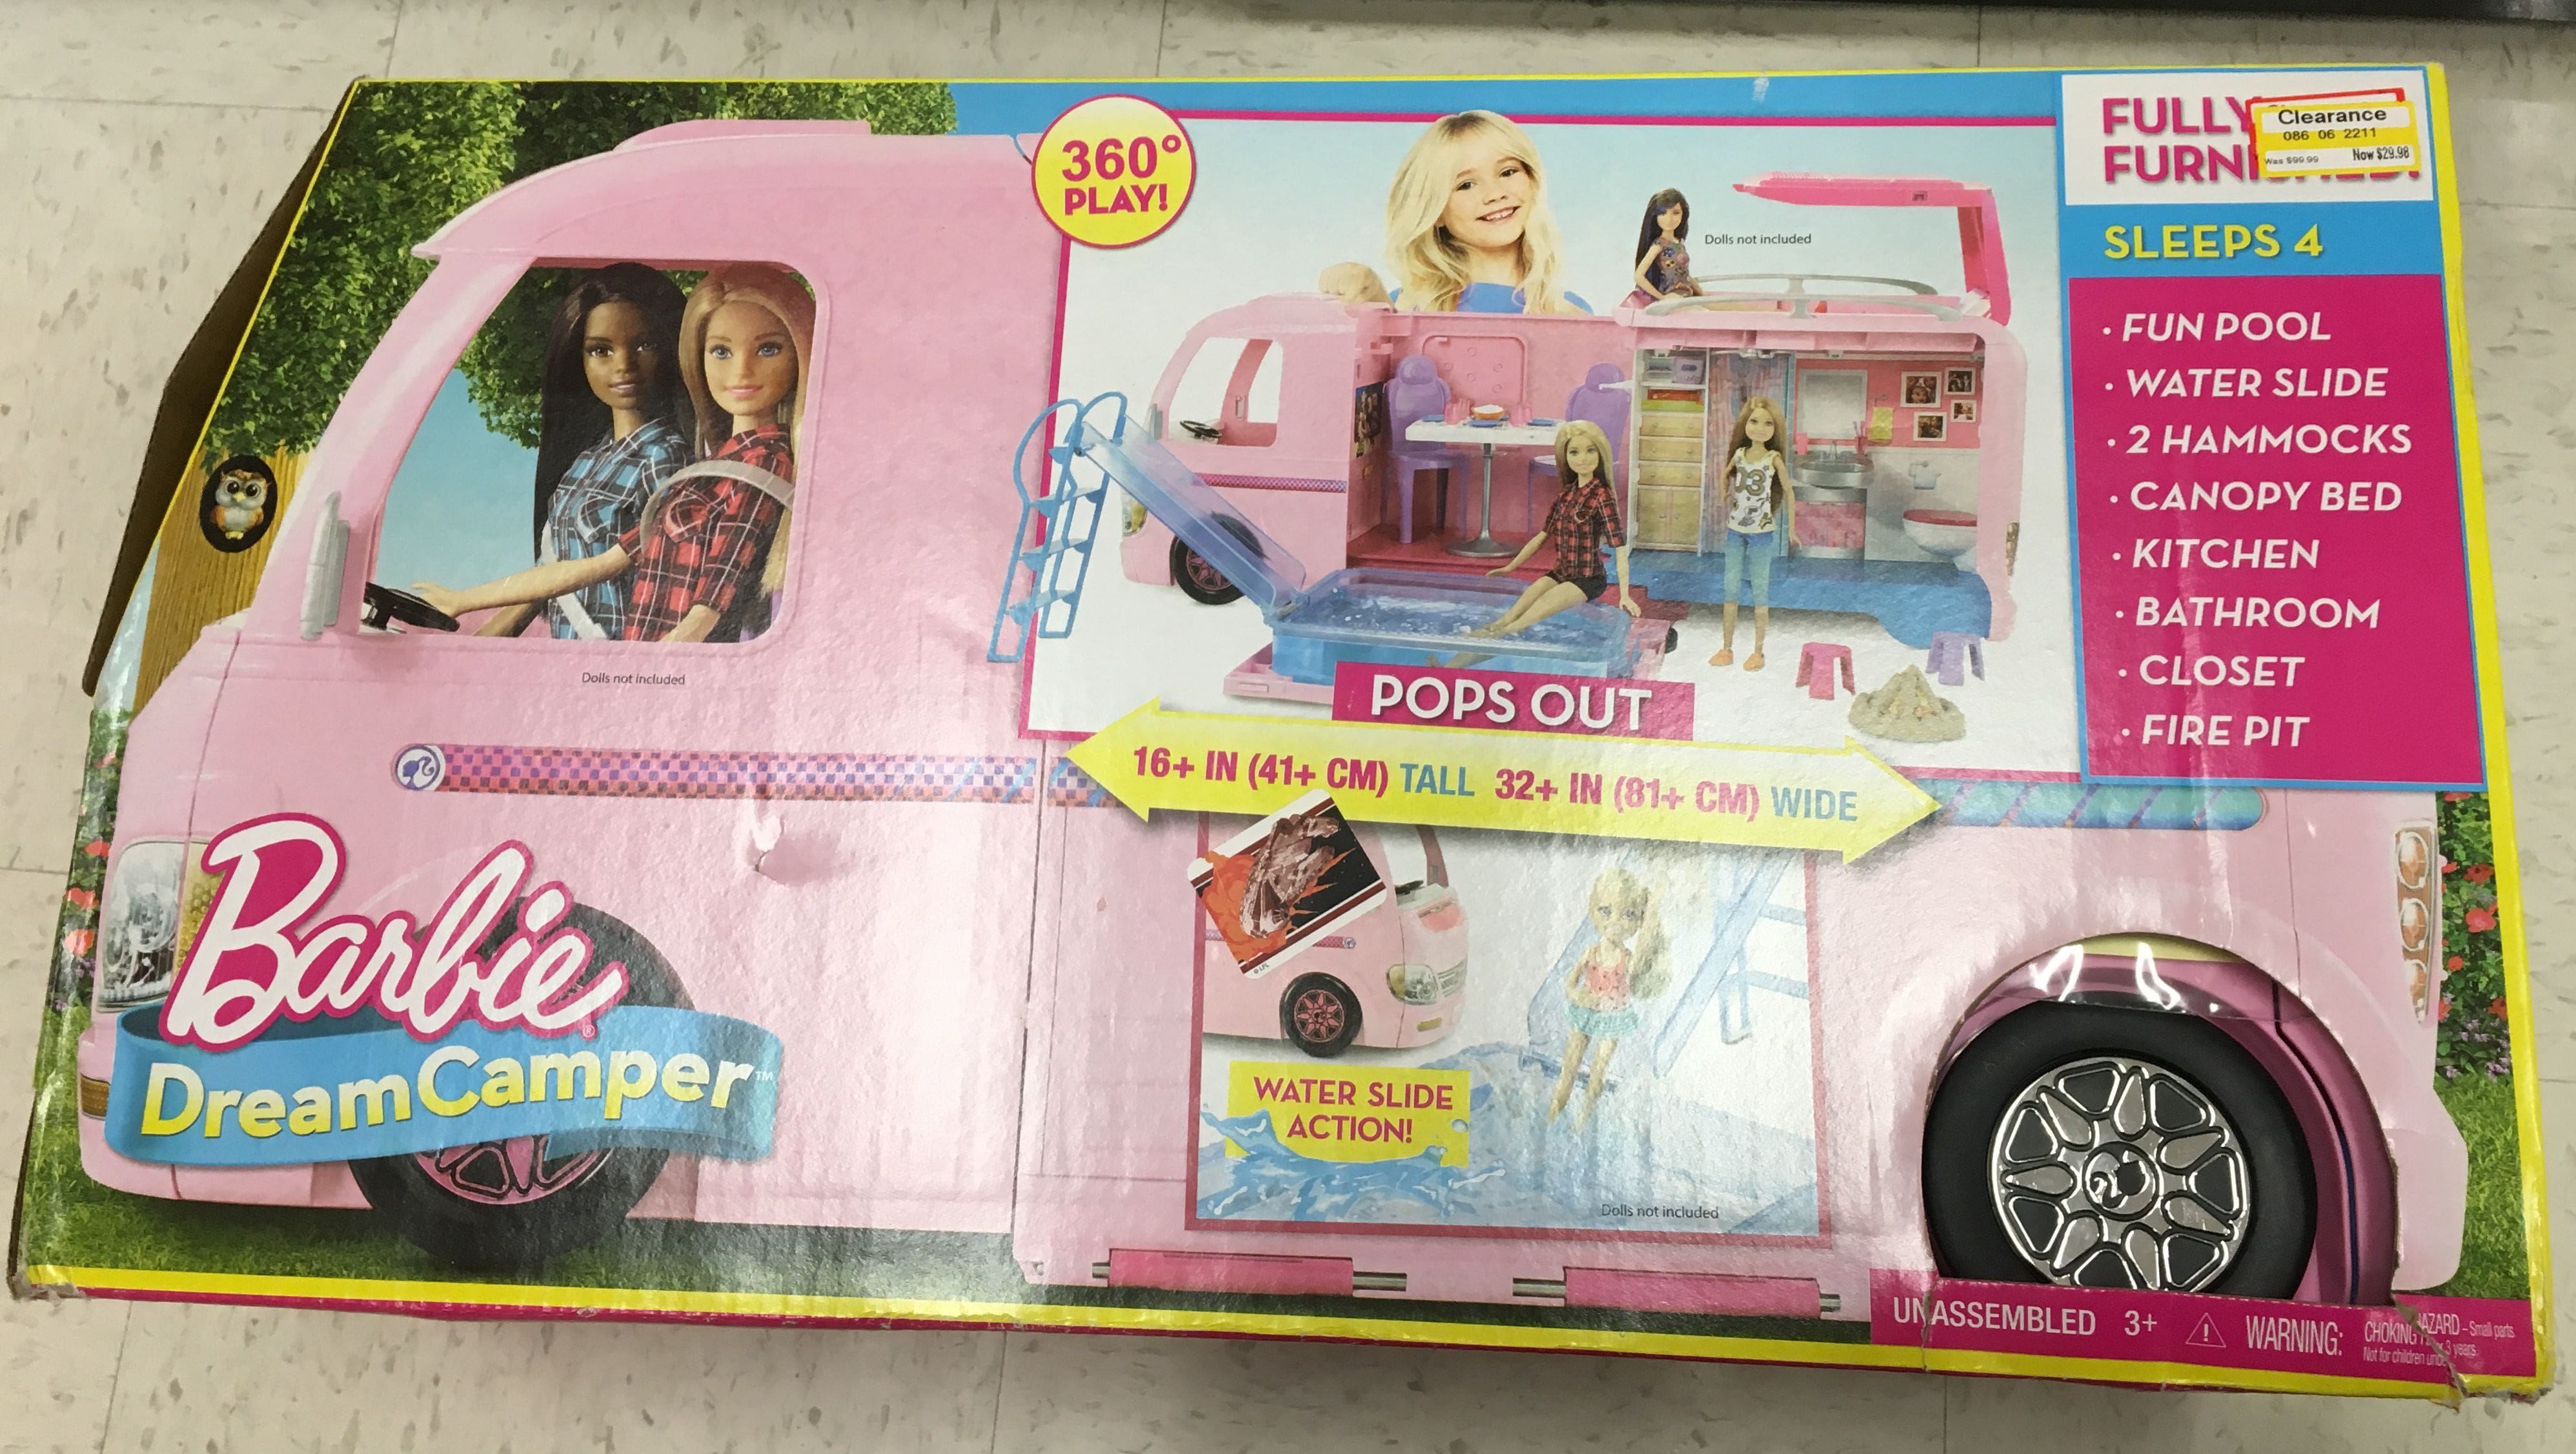 YMMV - Target Barbie Dream Camper Clearance - $29.98